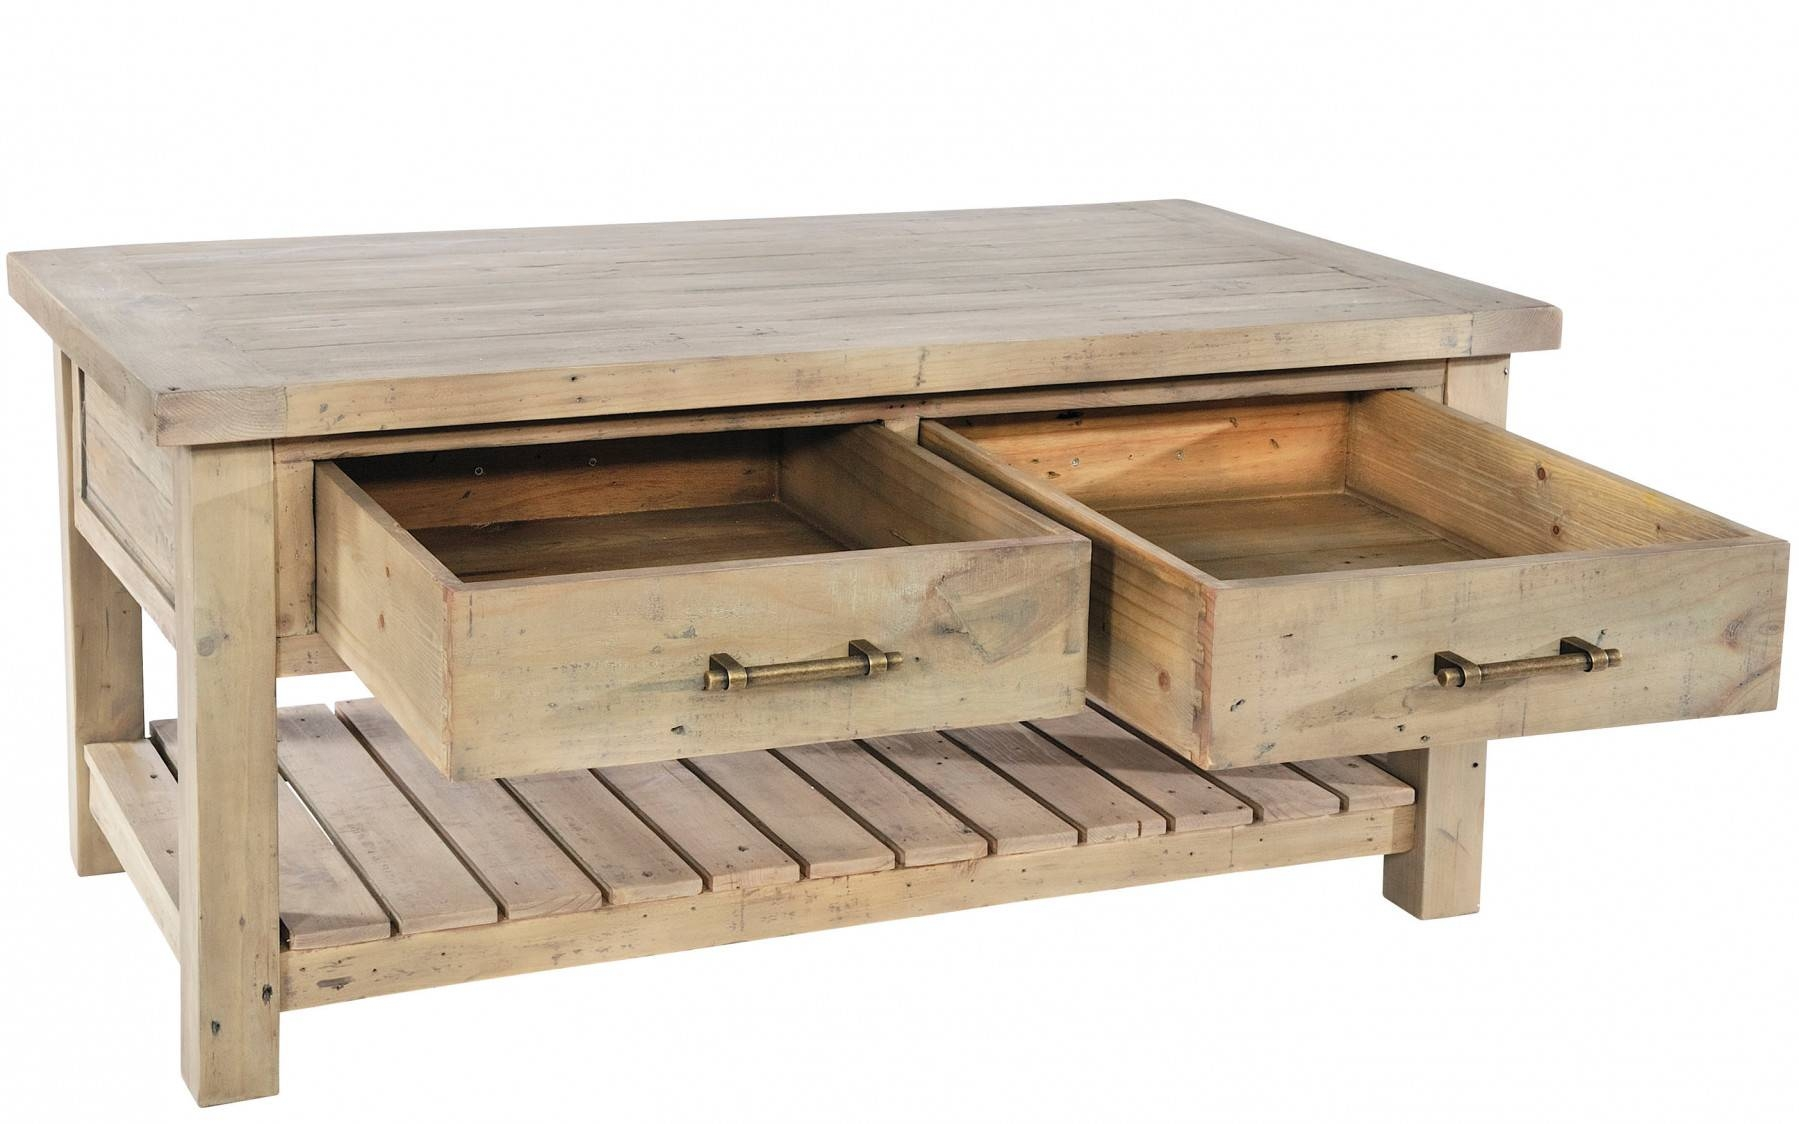 Saltash Reclaimed Pine Coffee Table | Buy At Kontenta pertaining to Old Pine Coffee Tables (Image 29 of 30)